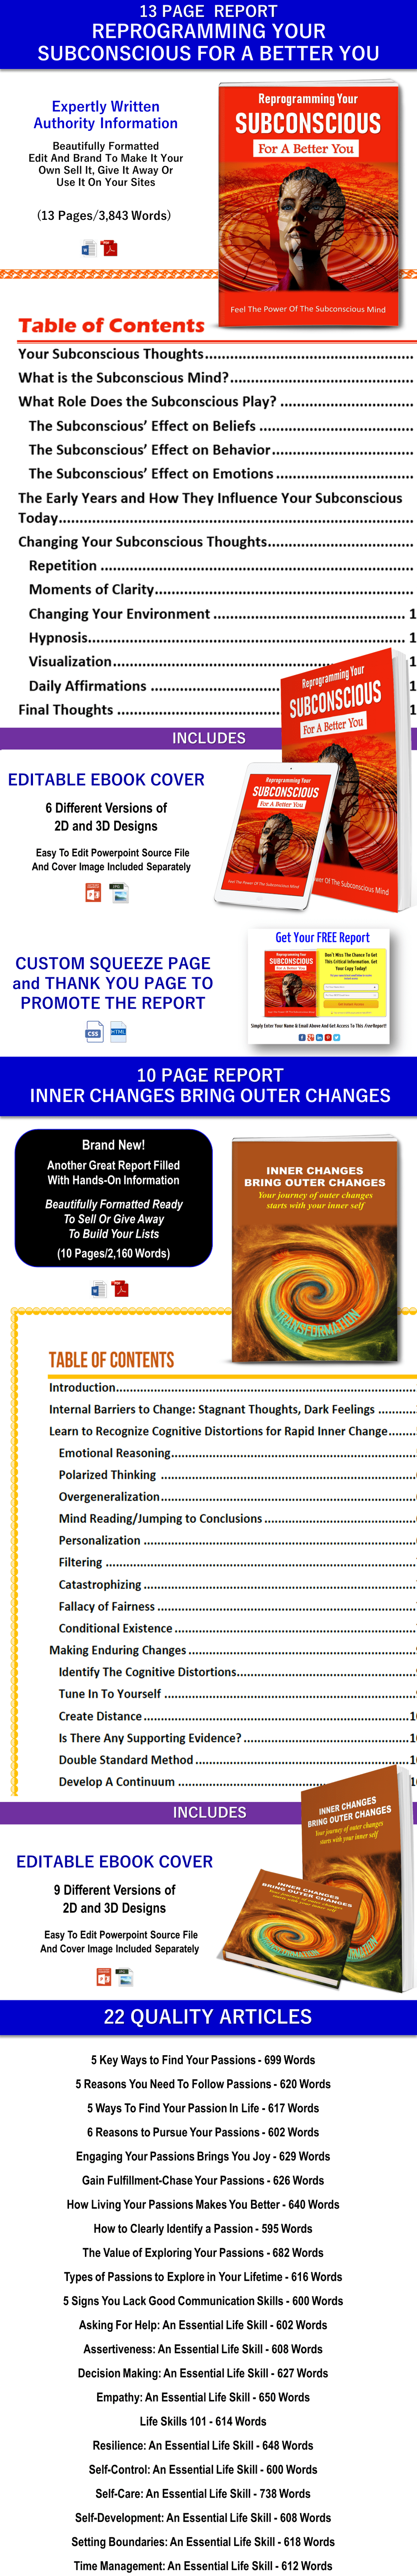 INNER STRENGTH and UNEXPRESSED EMOTIONS With PLR Rights